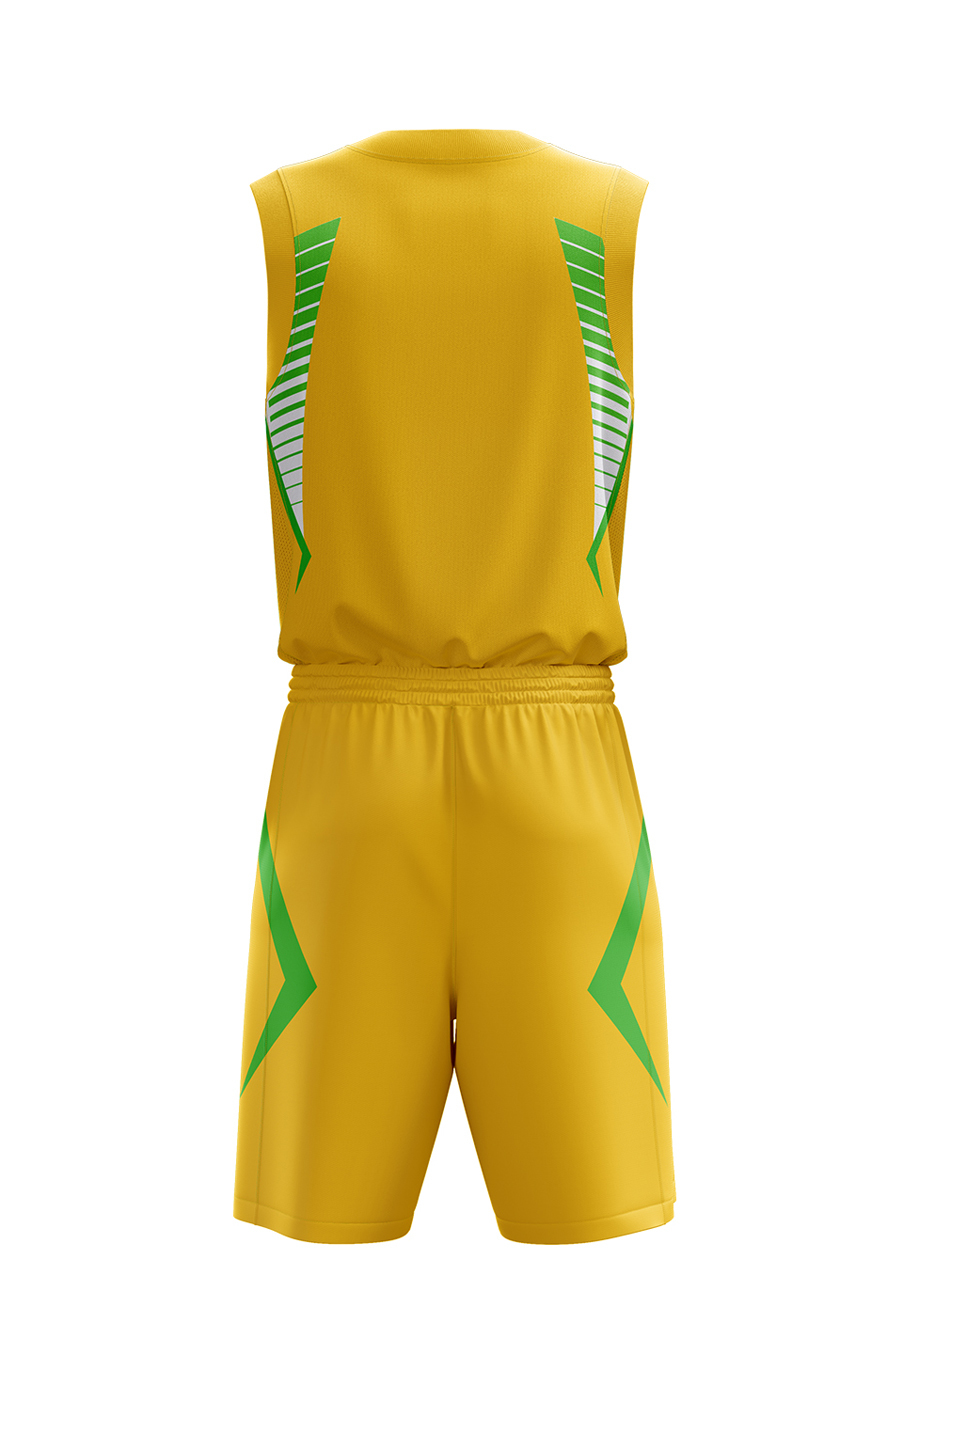 Team Basketball Uniform